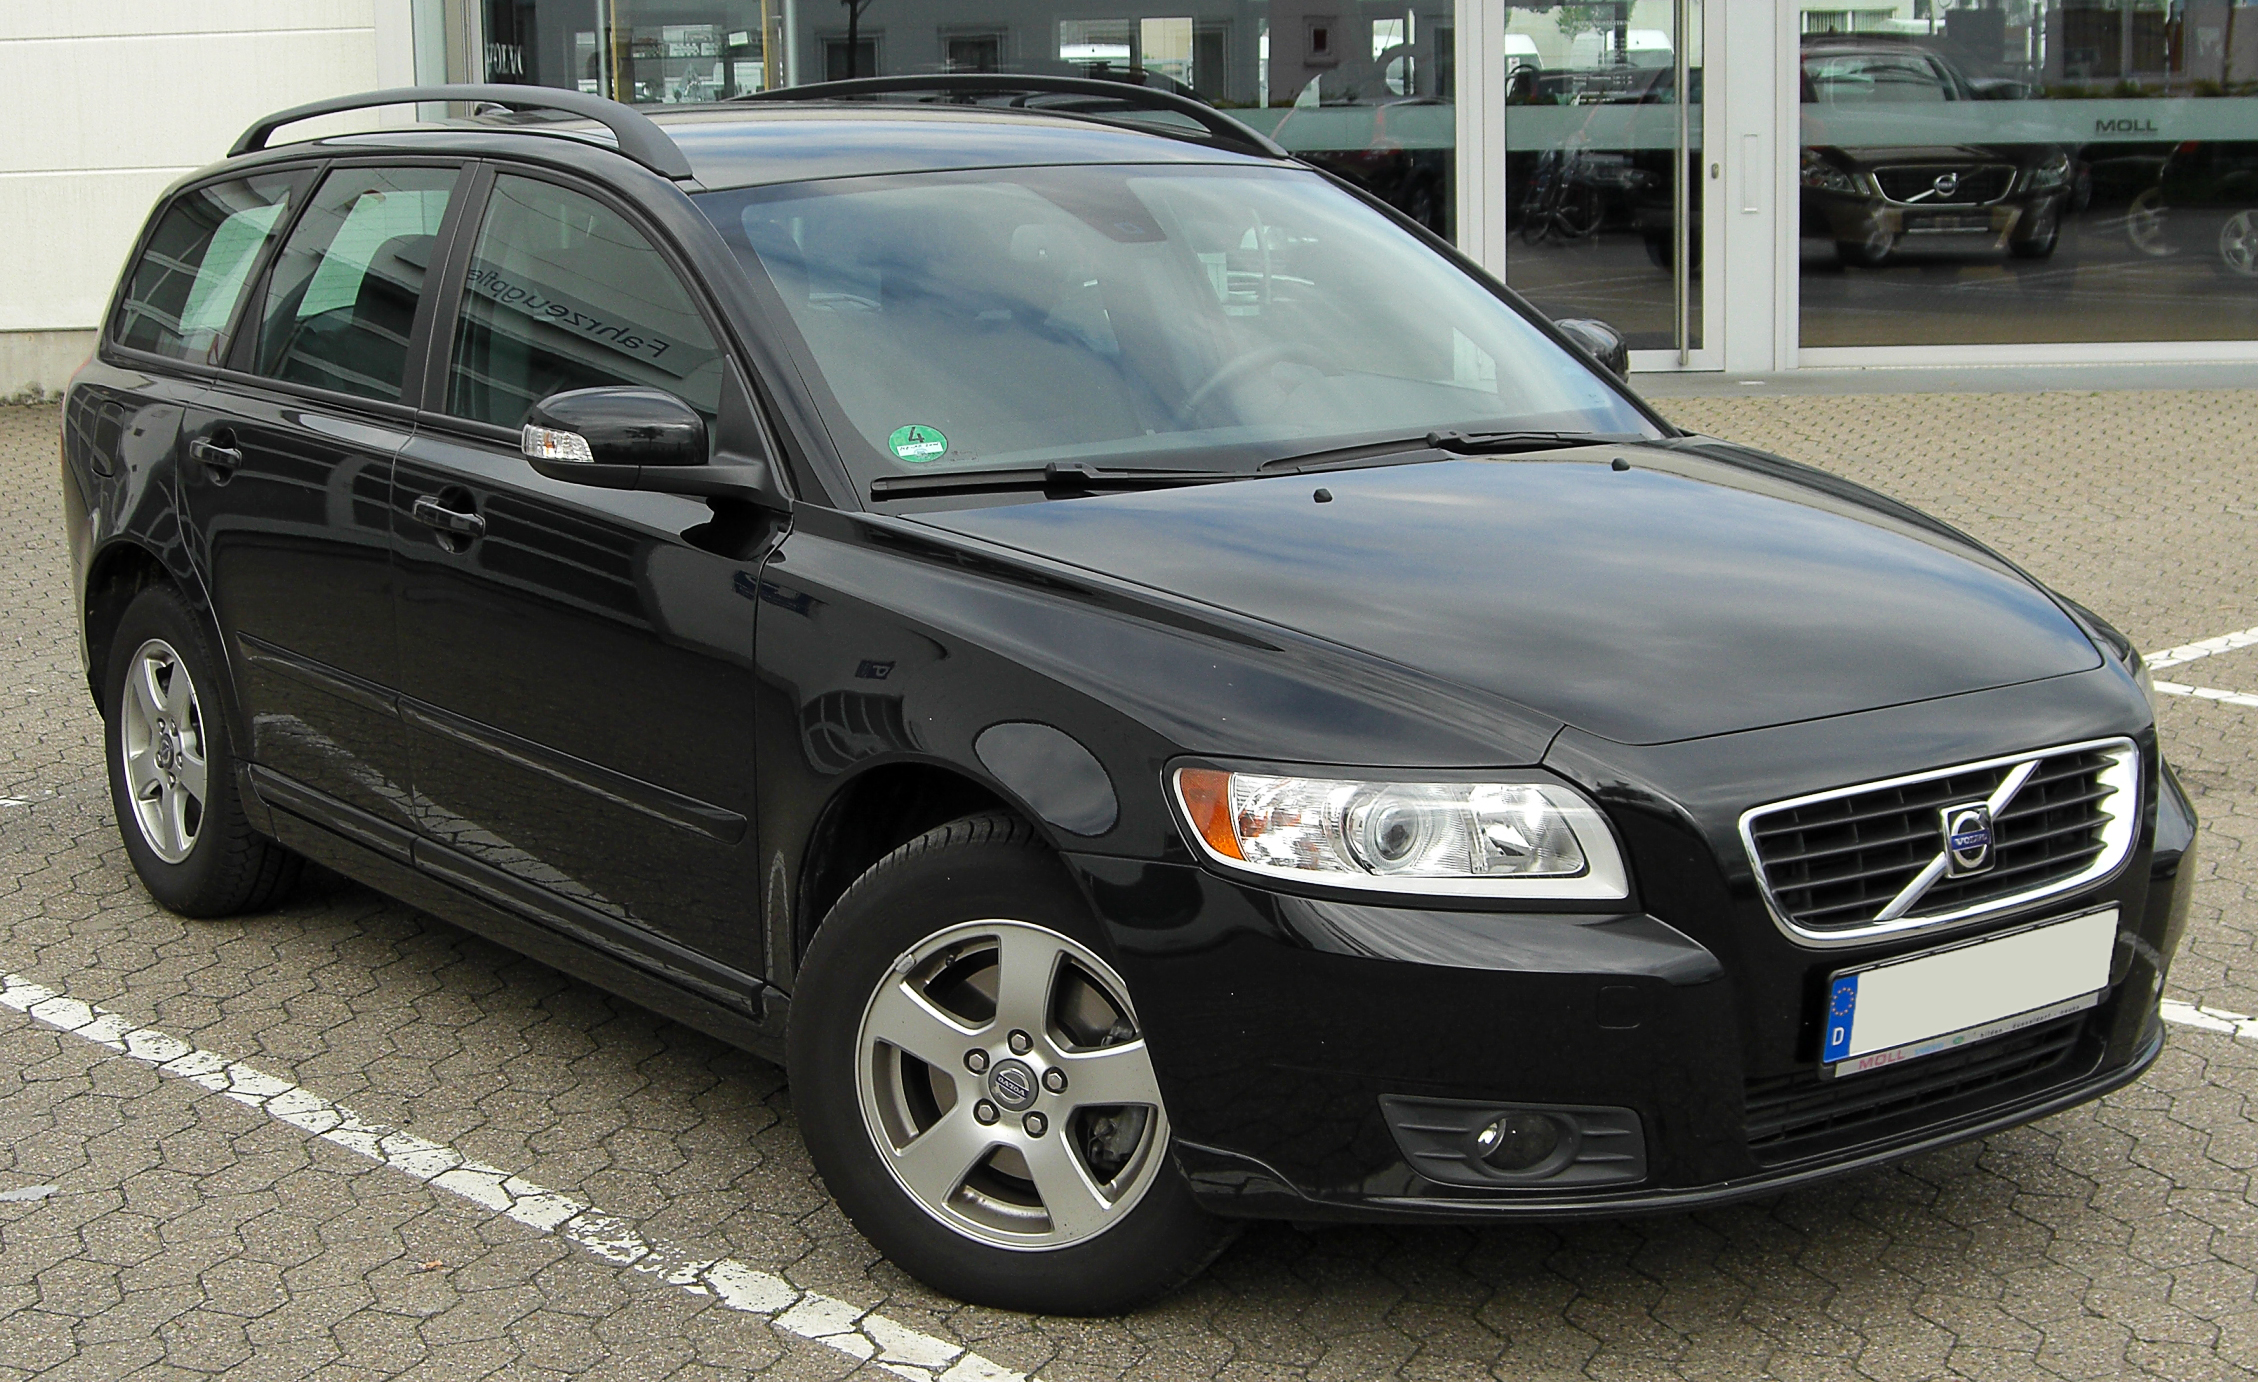 File Volvo V50 1 6 D Jpg Wikimedia Commons